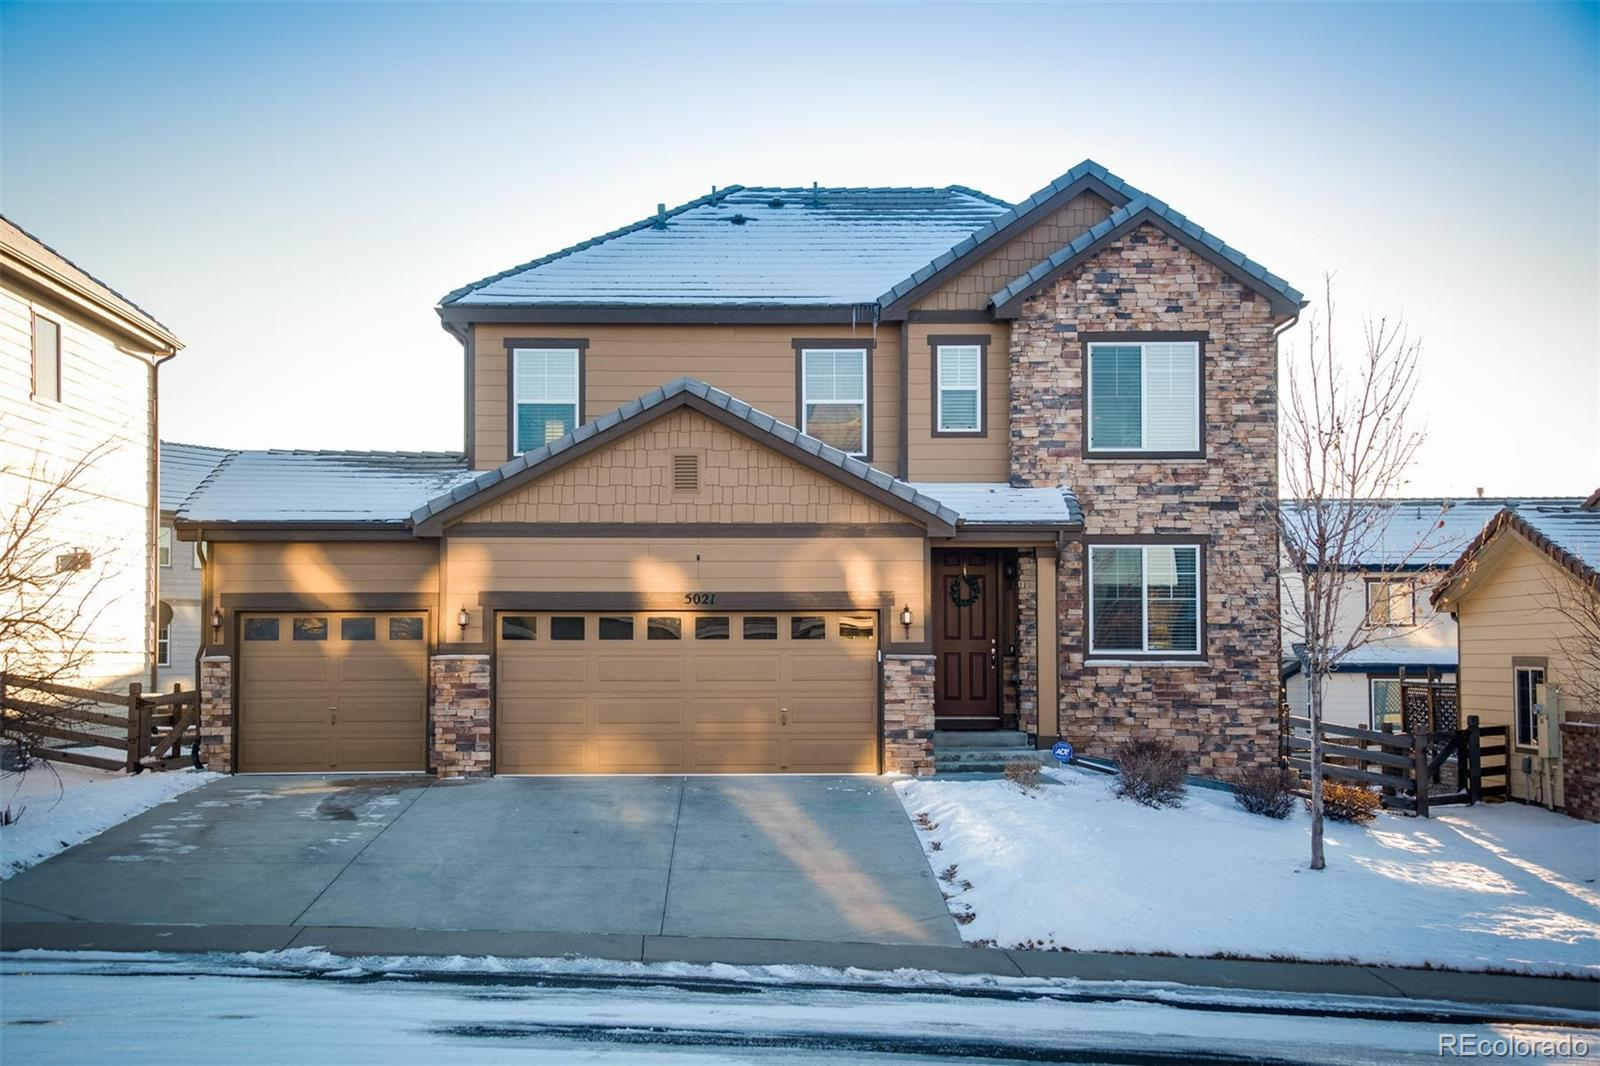 MLS# 9540267 - 2 - 5021 S Netherland Way, Centennial, CO 80015